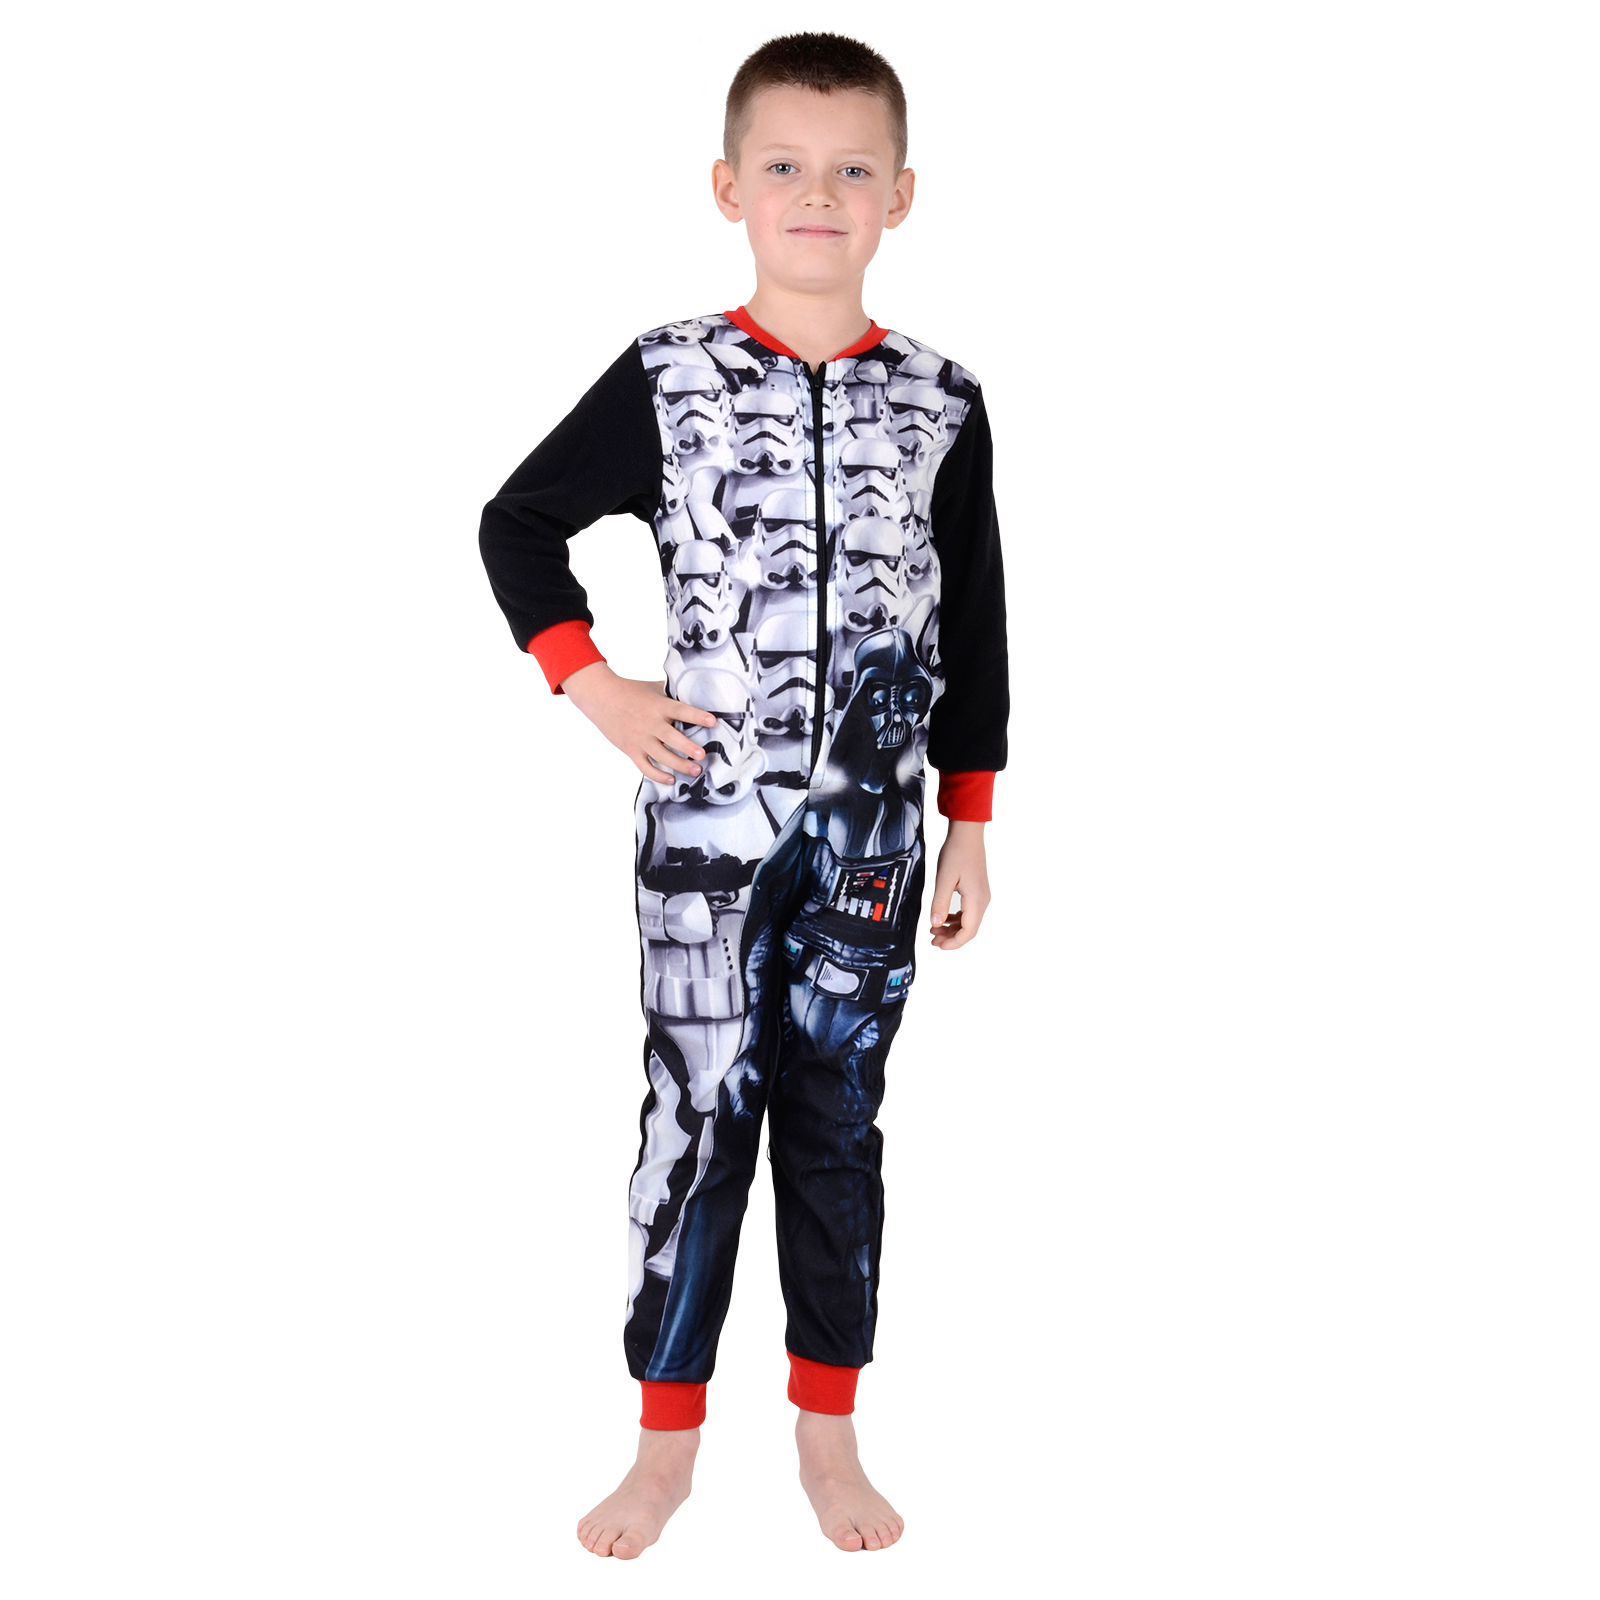 View, comment, download and edit boy onesie Minecraft skins.